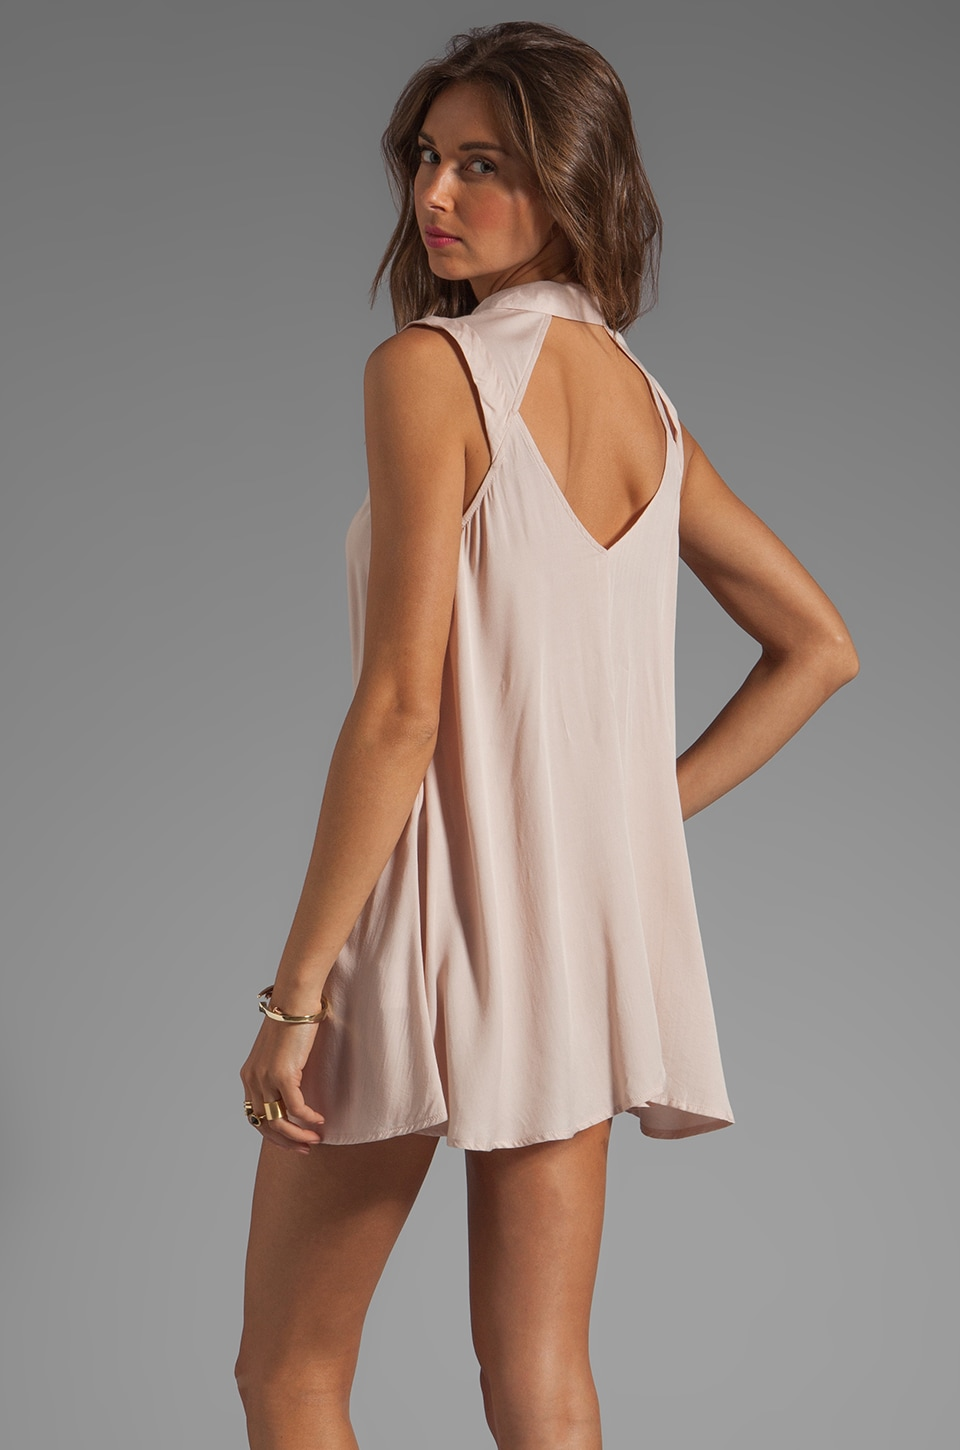 bless'ed are the meek Bermuda Dress in Nude